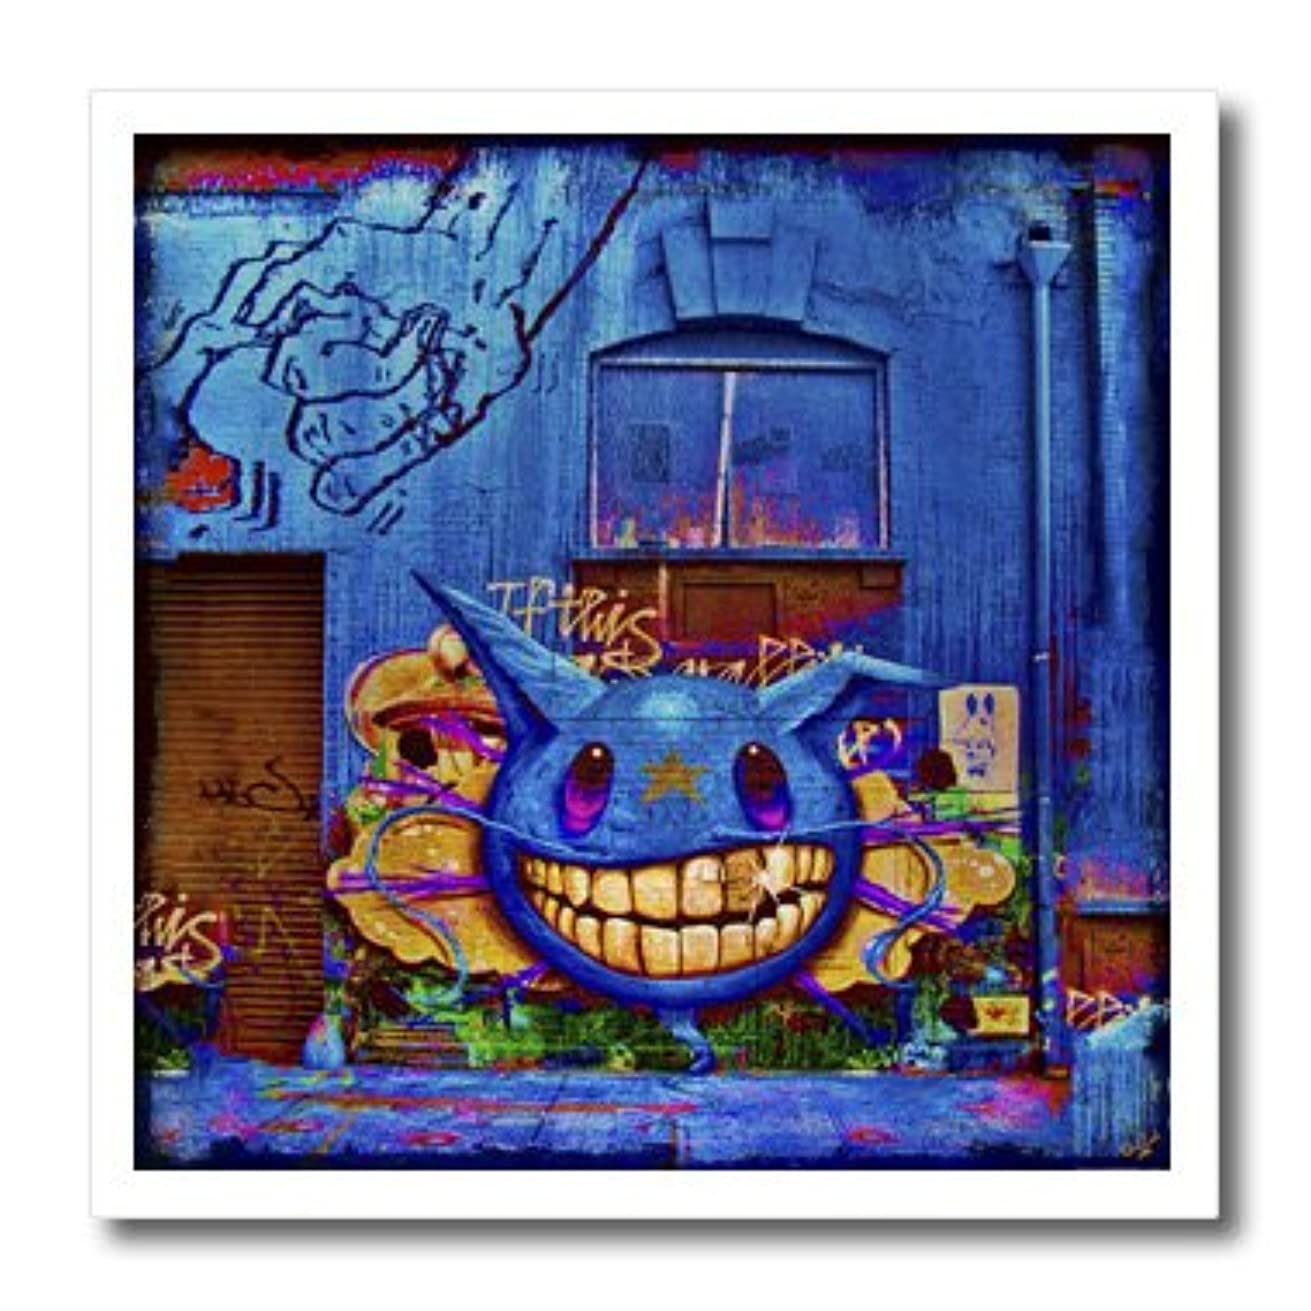 3dRose ht_55979_3 Wall Blue Graffiti Teeth Grunge-Iron On Heat Transfer, 10 by 10